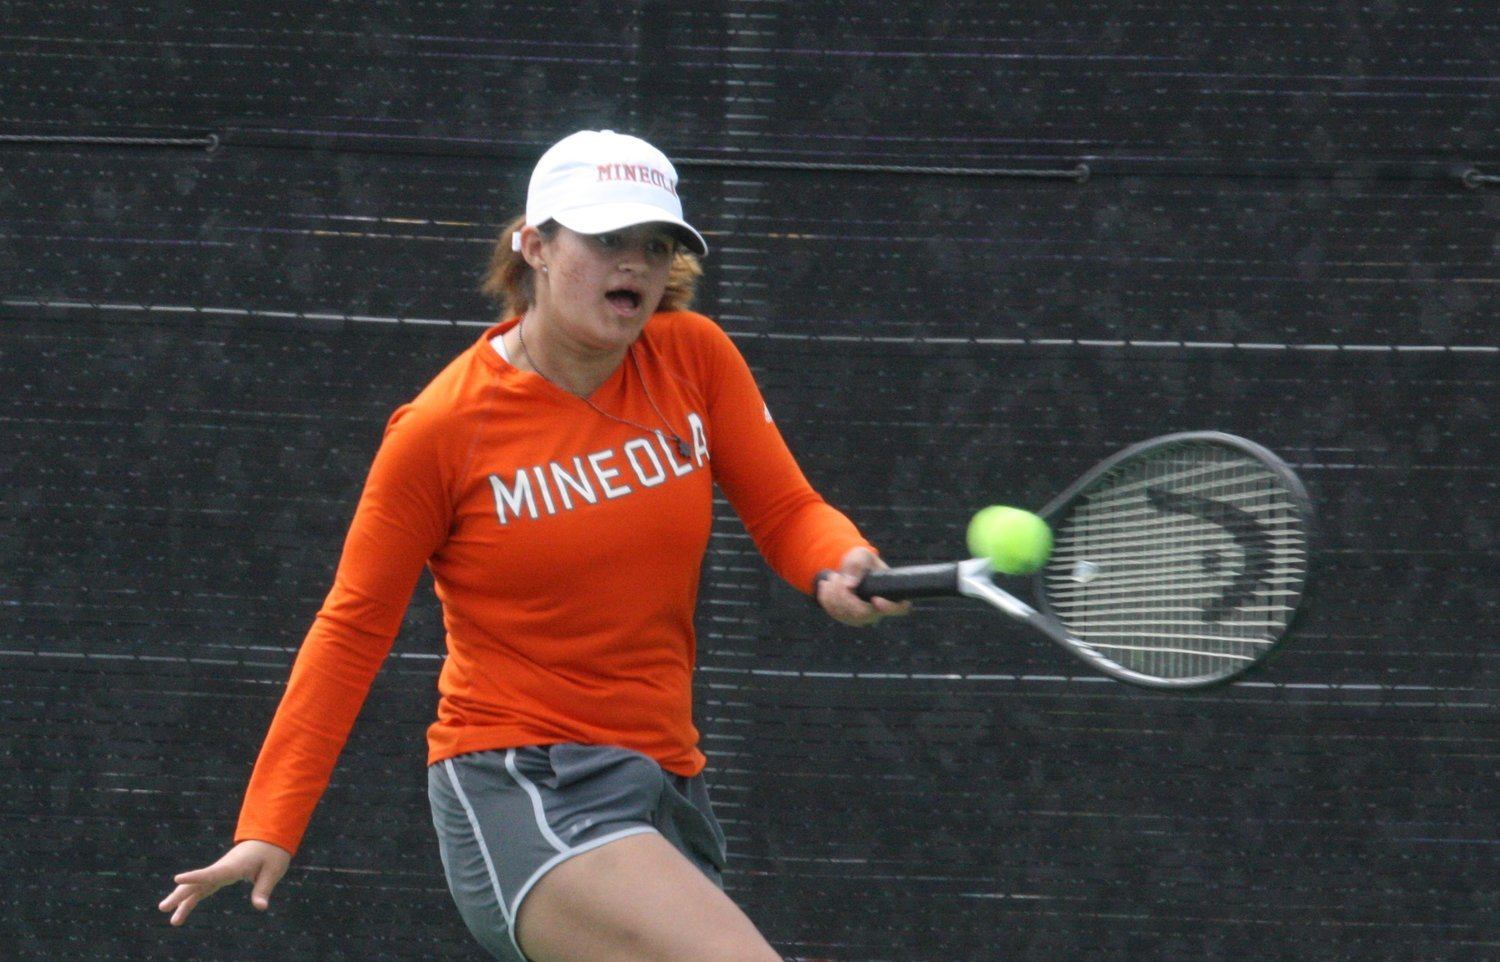 Mineola's Bree Williams and Edgewood's Esther Barker went head-to-head at the District 12-3A Tennis Tournament April 3 in Edgewood.